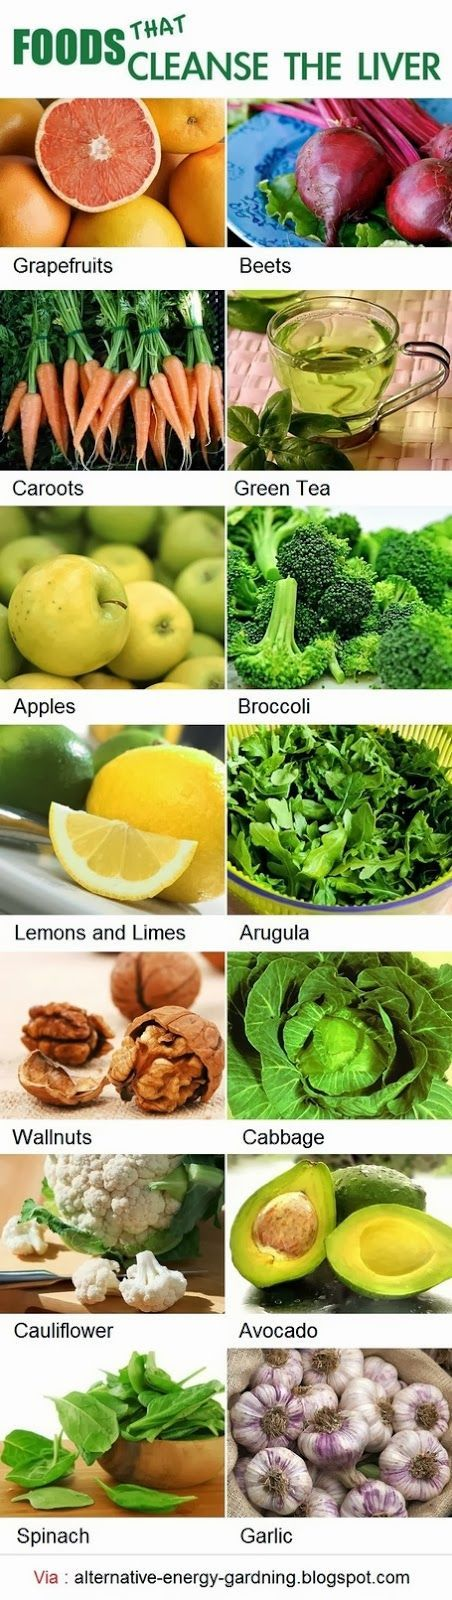 Food That Cleanse The Liver http://www.wellsome.com/health-and-wellness/7-reasons-heal-guts-bacteria/ #lovelifeandliveit #healthyliving #nourish